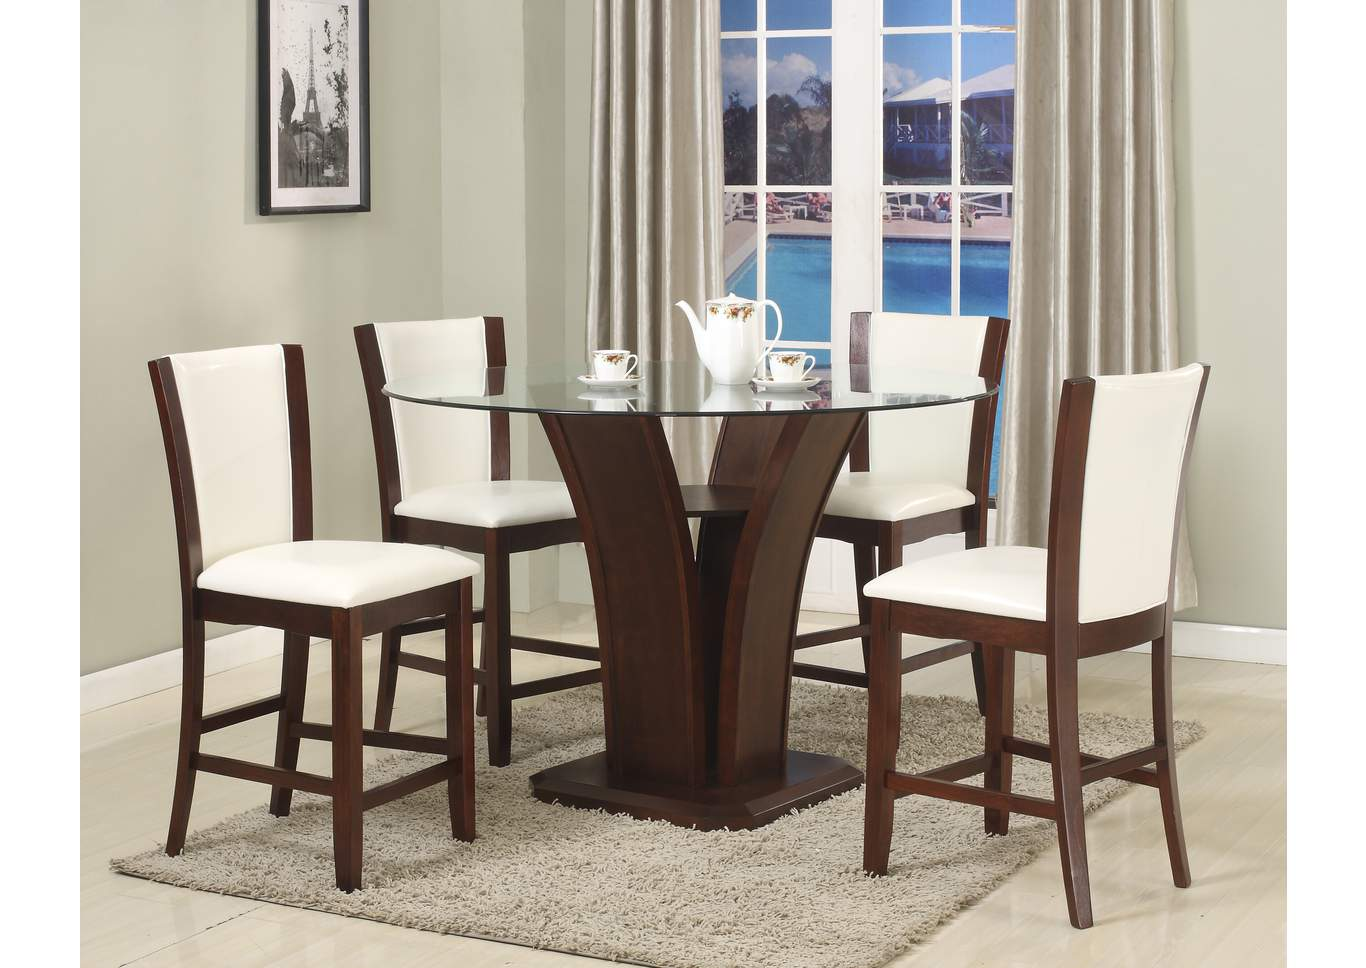 adams furniture and appliance camelia counter height dining room table w 4 white counter height. Black Bedroom Furniture Sets. Home Design Ideas